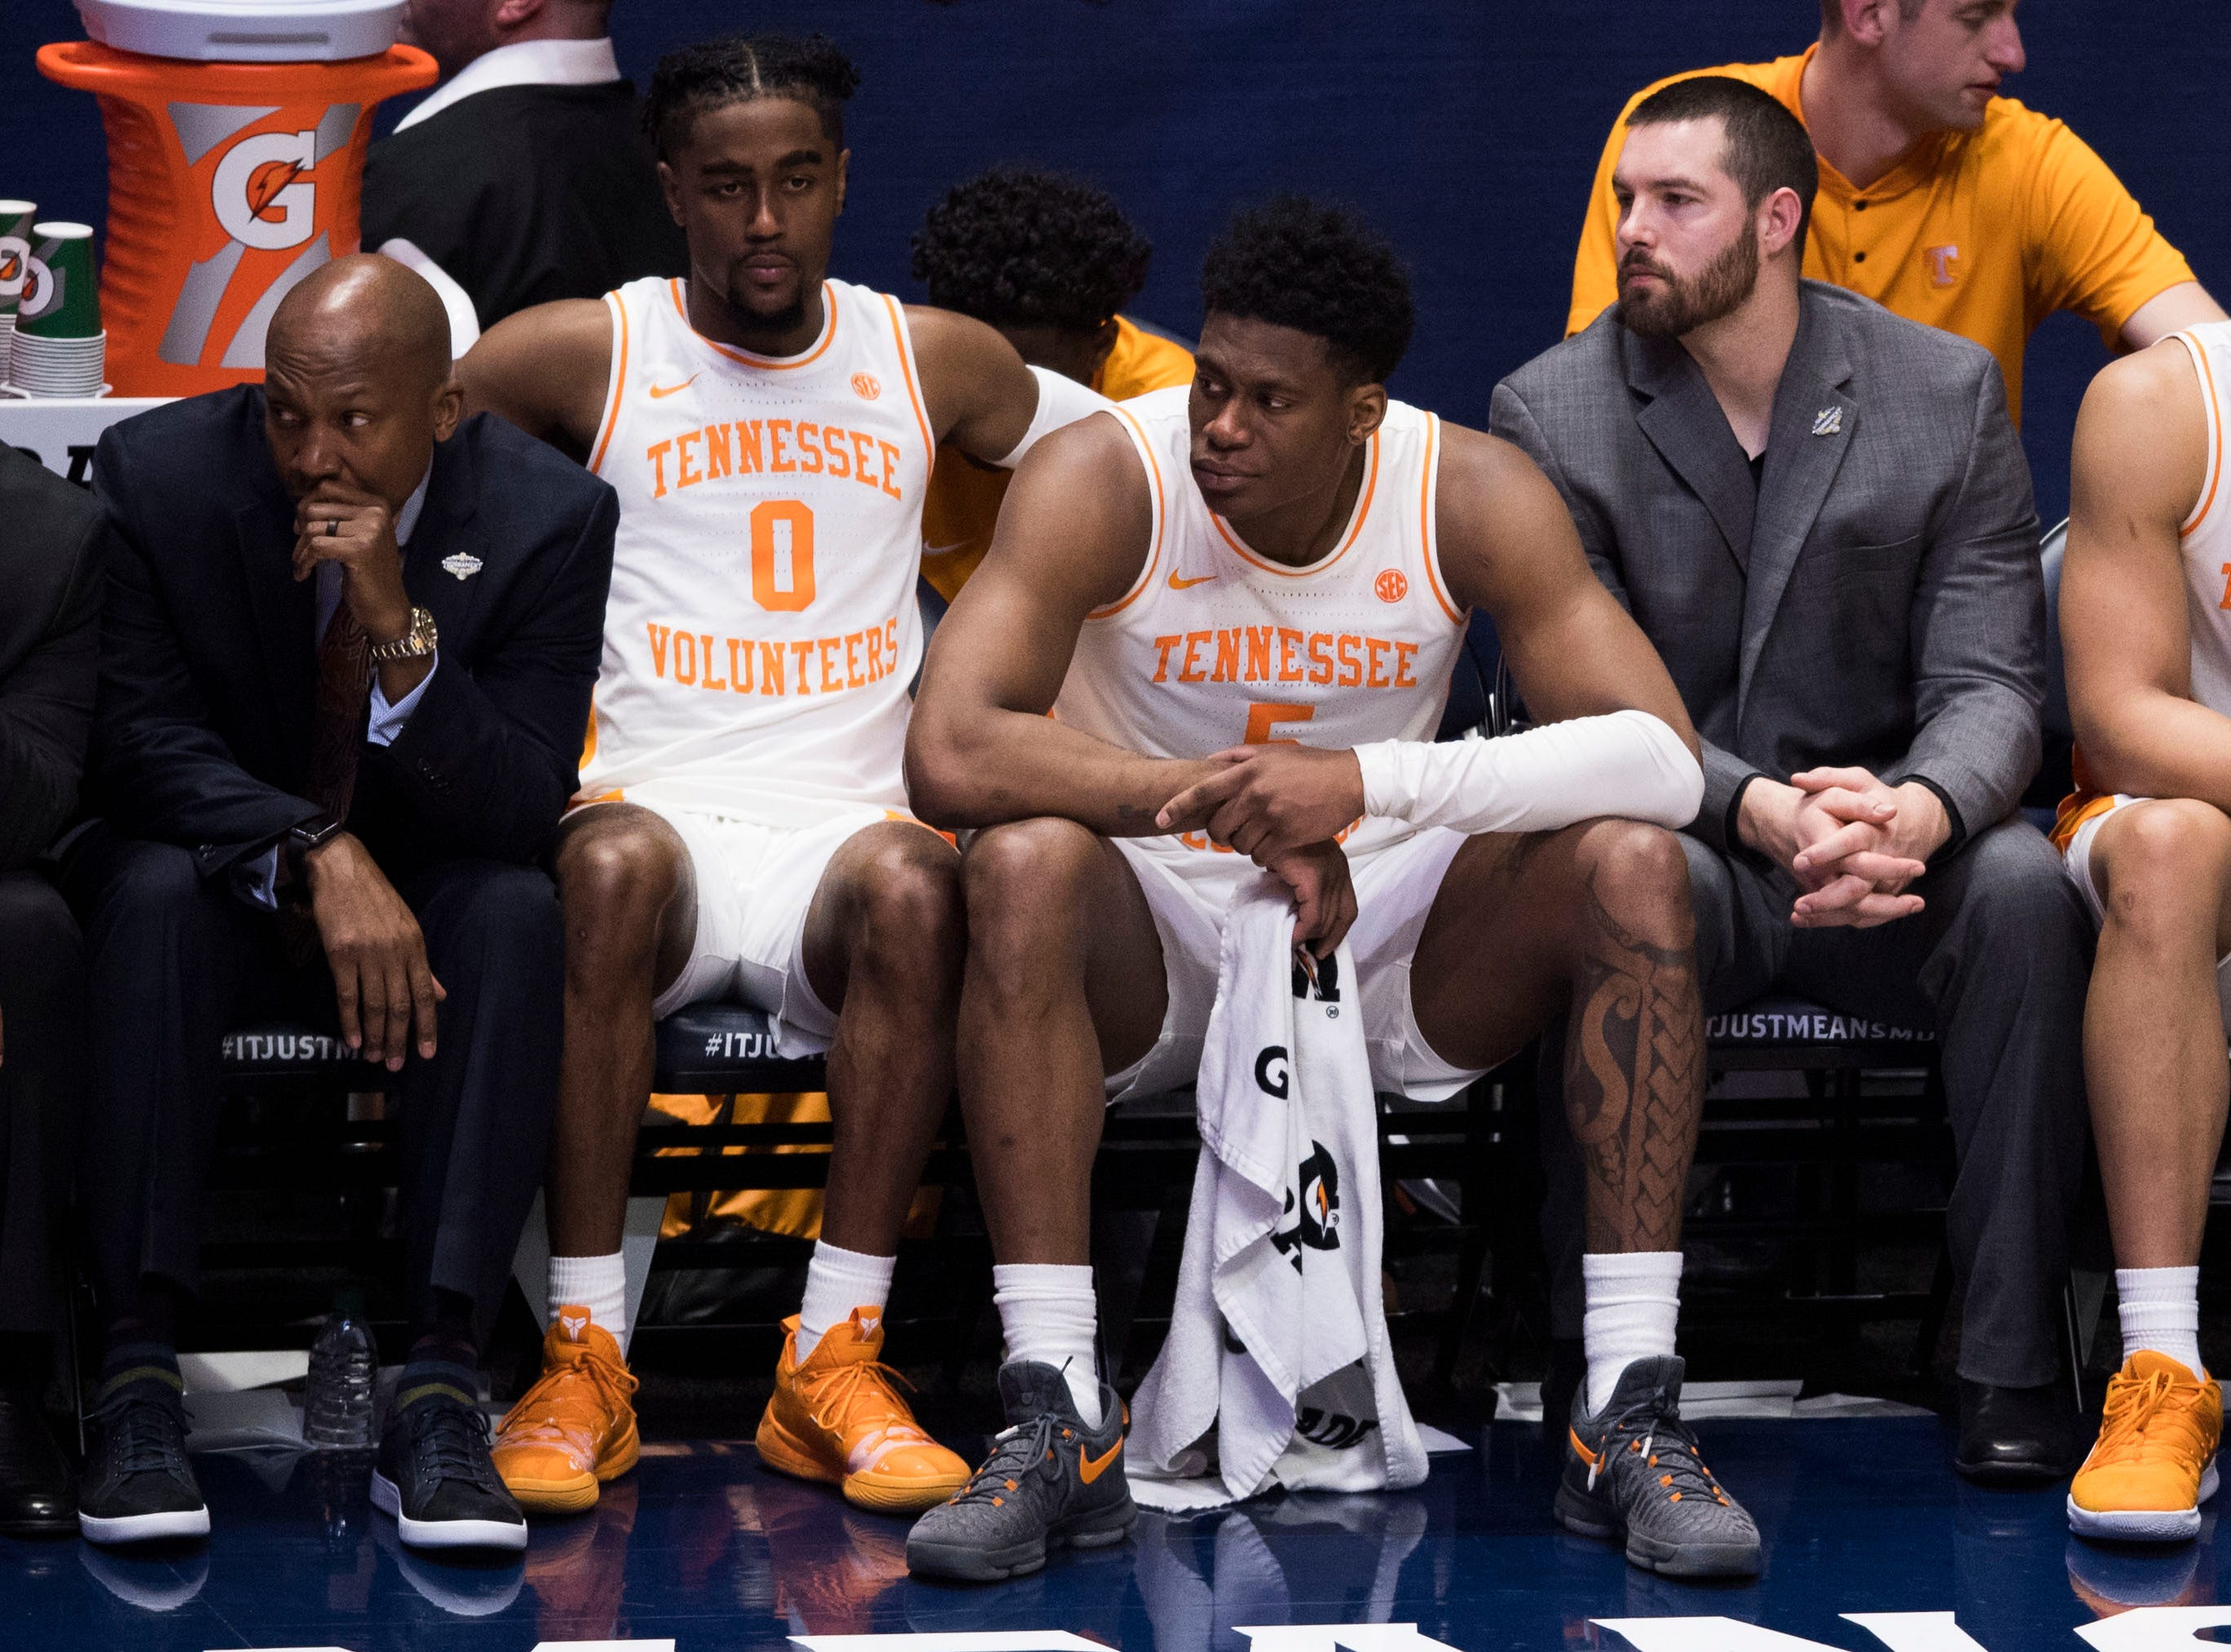 Tennessee guard Jordan Bone (0) and Tennessee guard Admiral Schofield (5) sit on the bench during the second half of the SEC Men's Basketball Tournament championship game at Bridgestone Arena in Nashville, Tenn., Sunday, March 17, 2019.